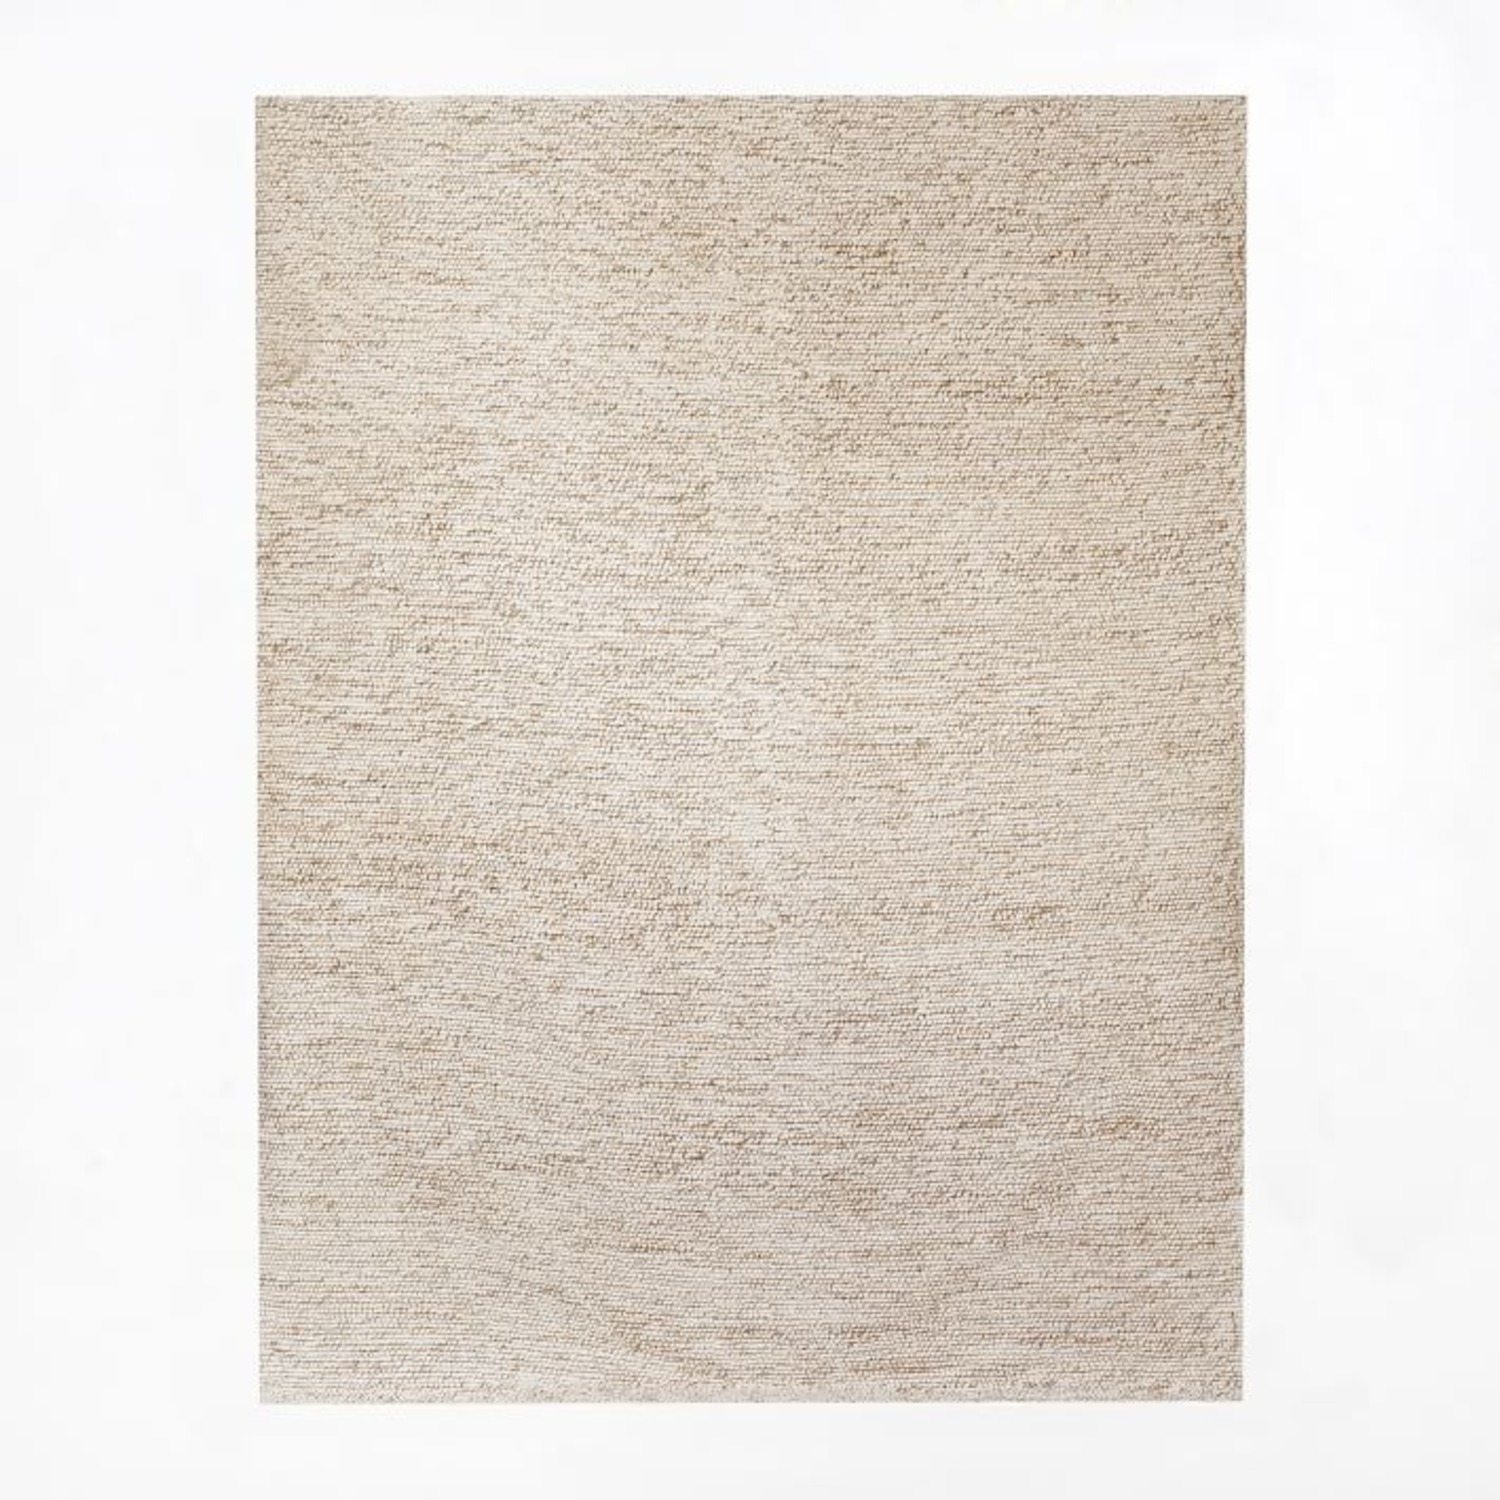 West Elm Mini Pebble Jute Wool Rug - image-1